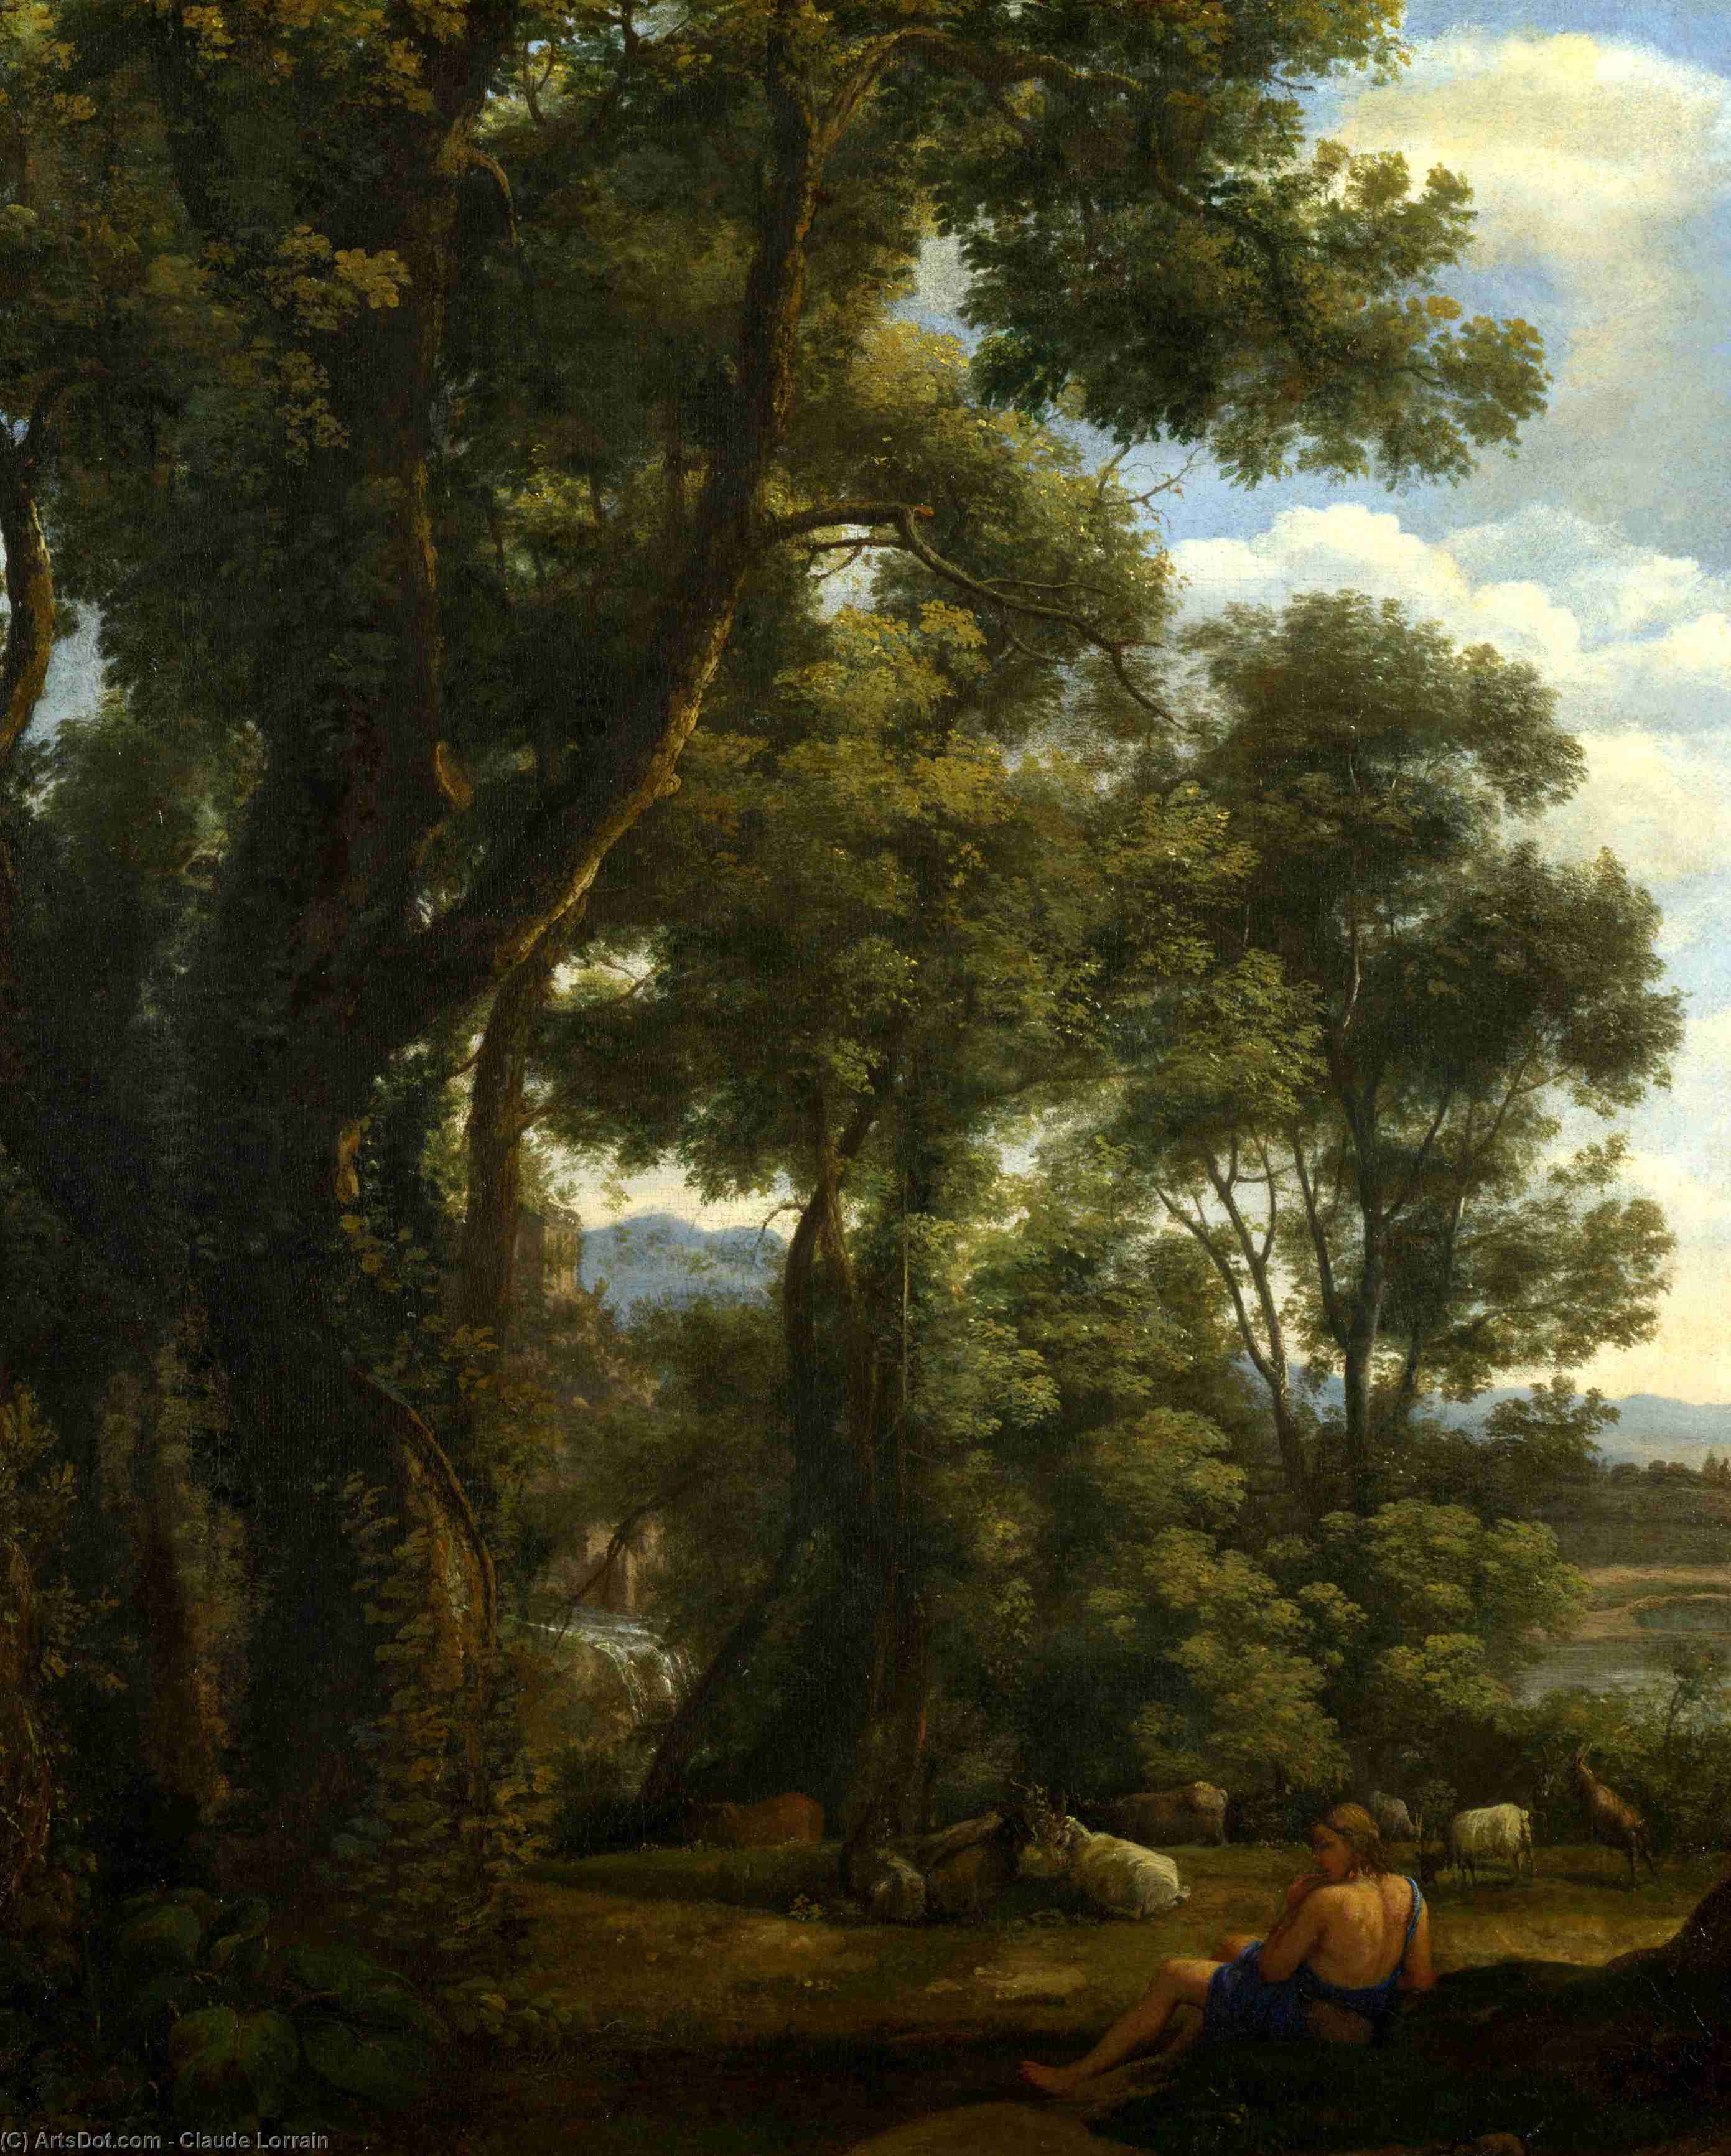 Landscape with a Goatherd and Goats by Claude Lorrain (Claude Gellée)